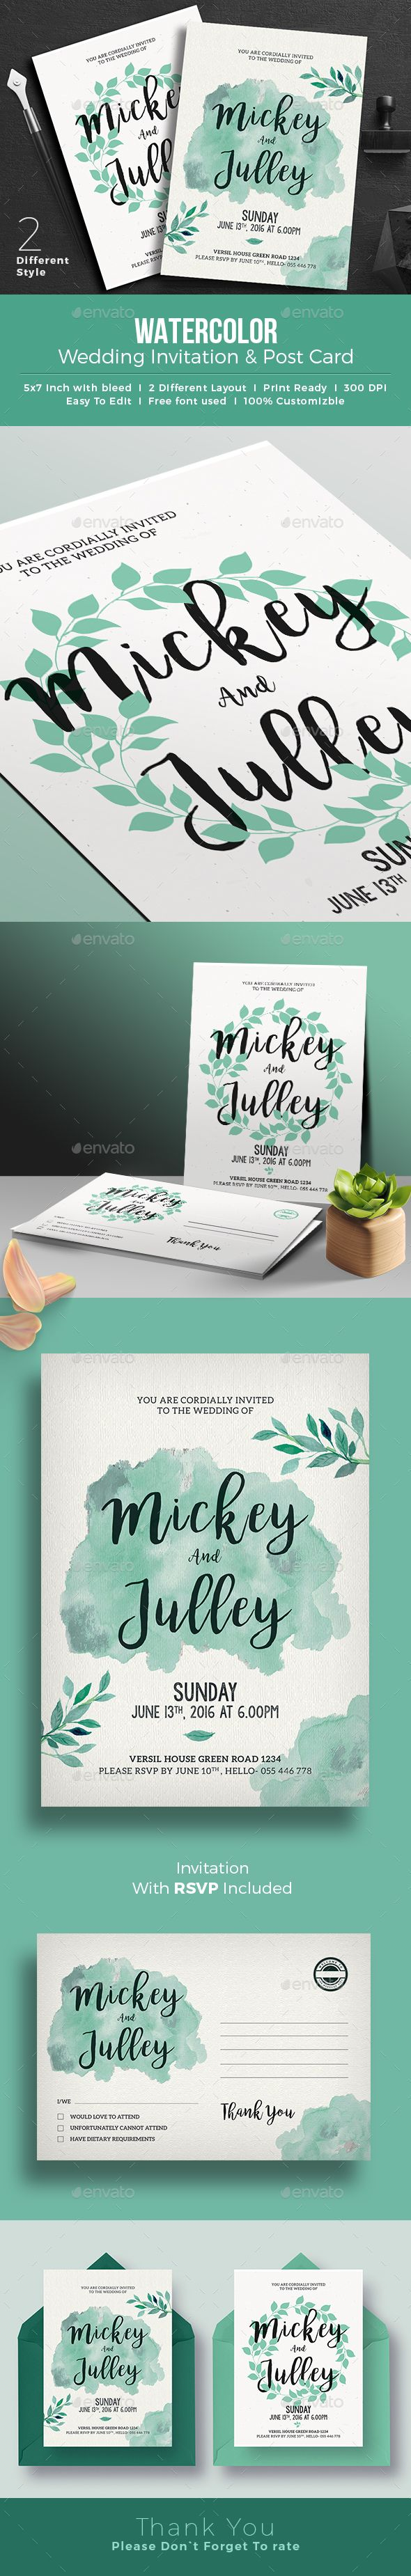 wedding invitation design psd%0A Water Color Wedding Invitation Post Card PSD Template   Trendy Modern Design    Save The Date